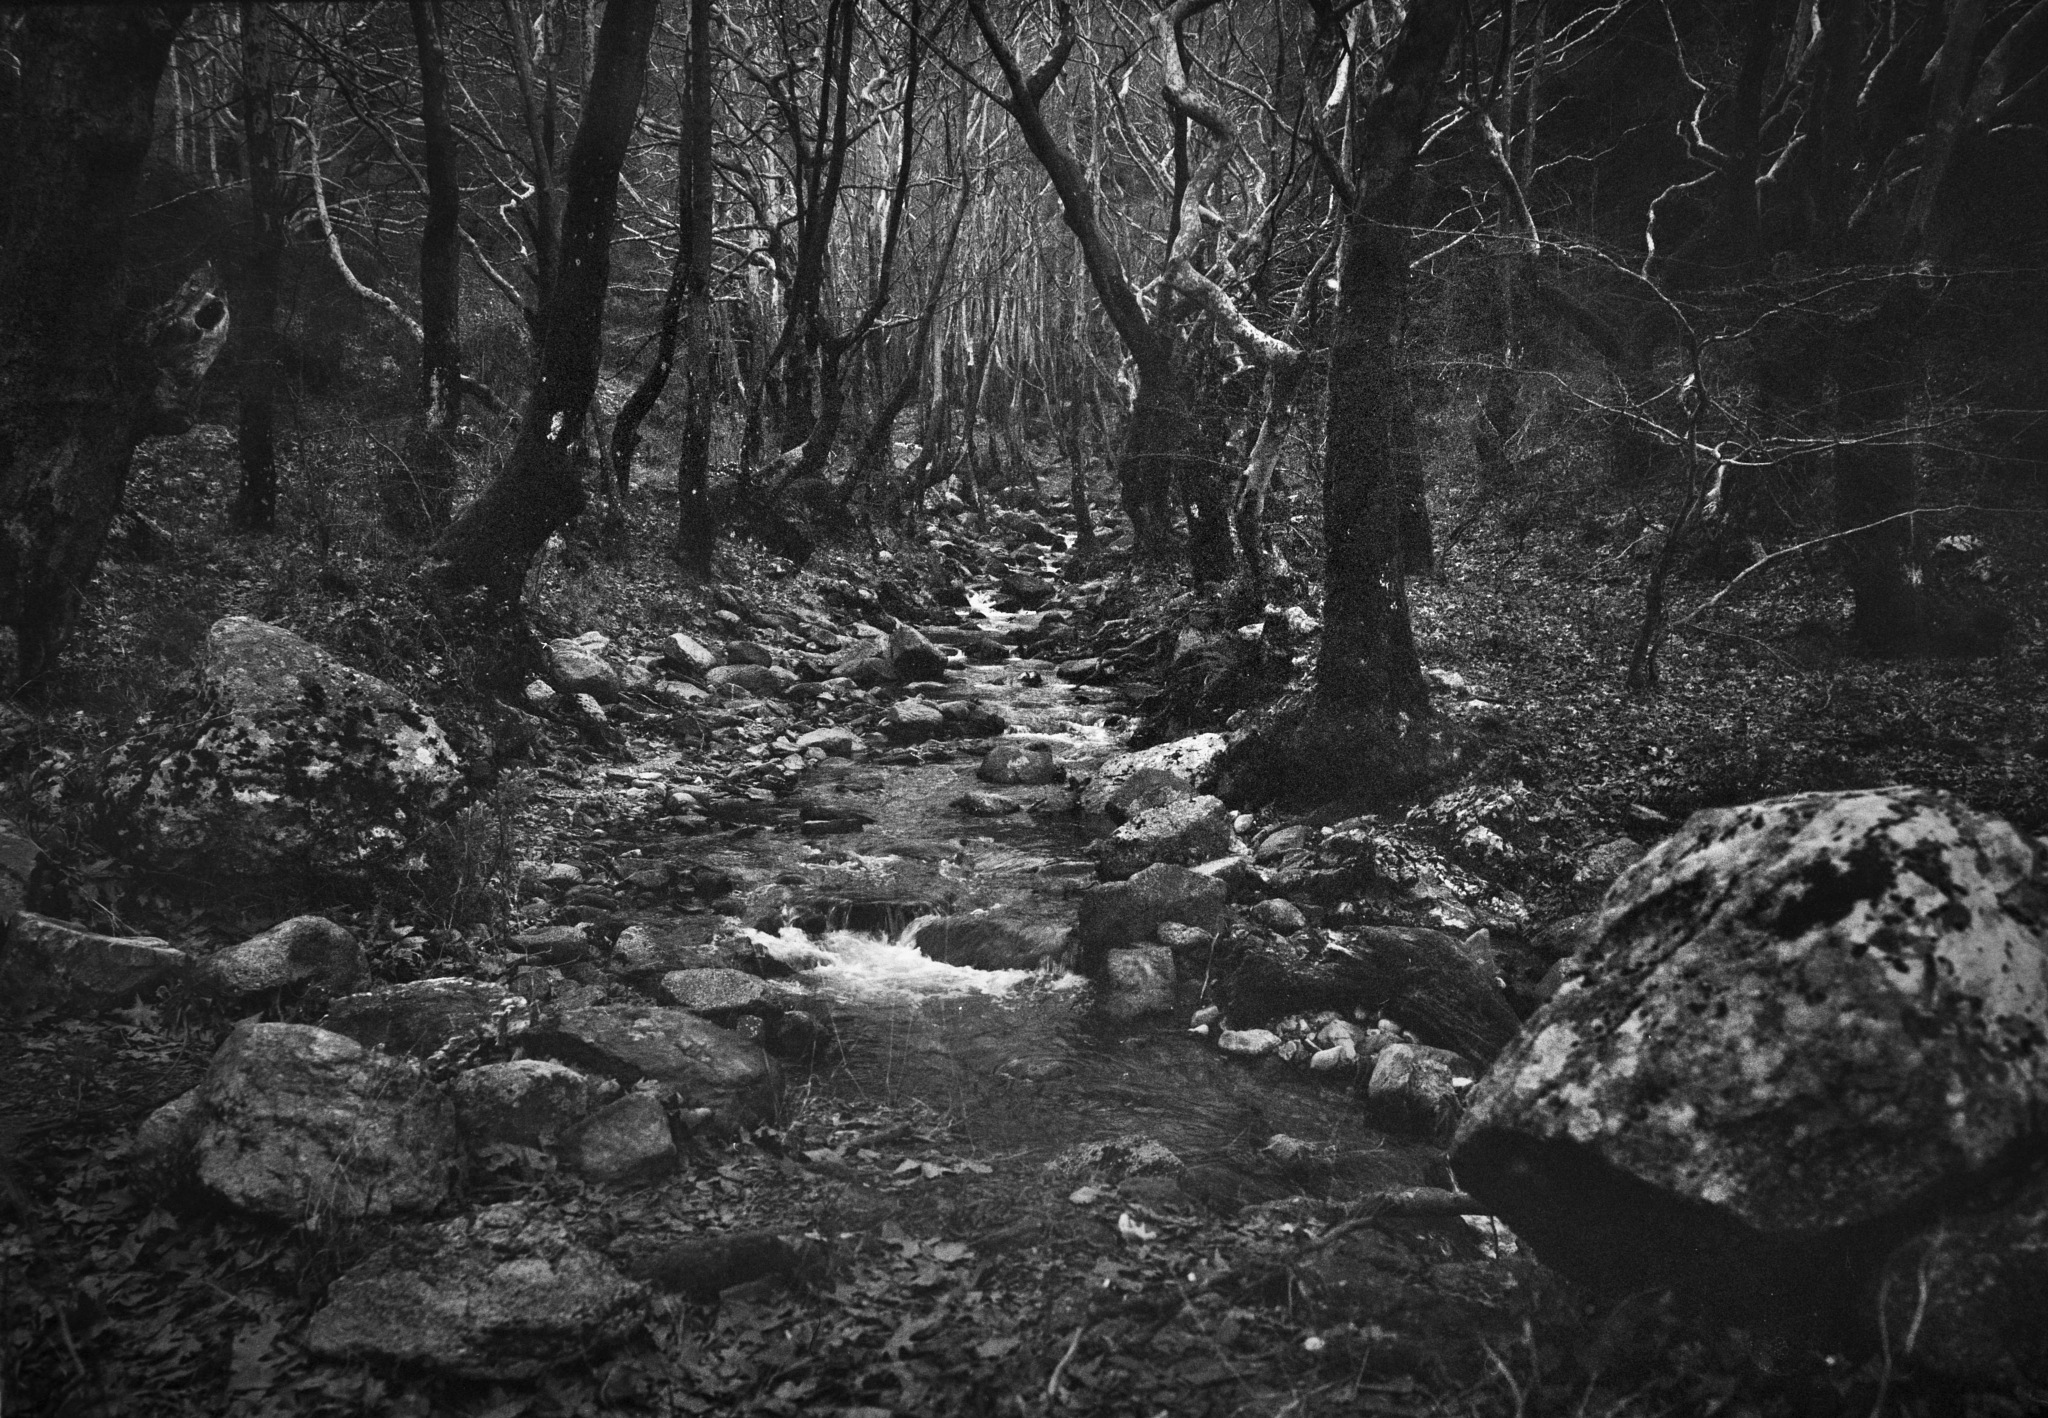 deep in the woods by Stathis Floros